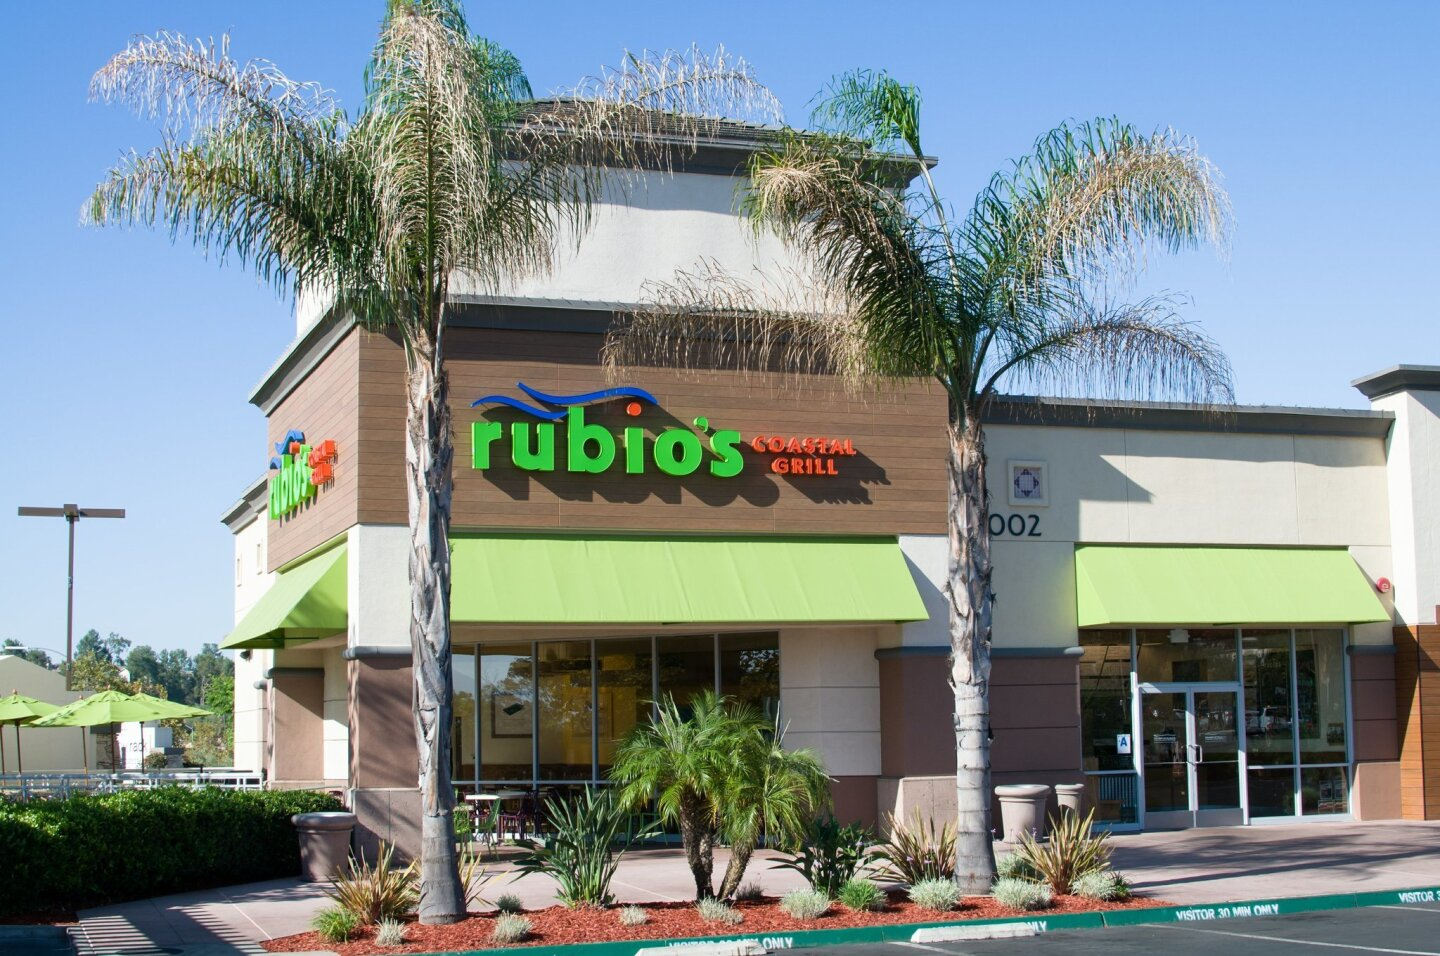 New brand and look for Rubio's